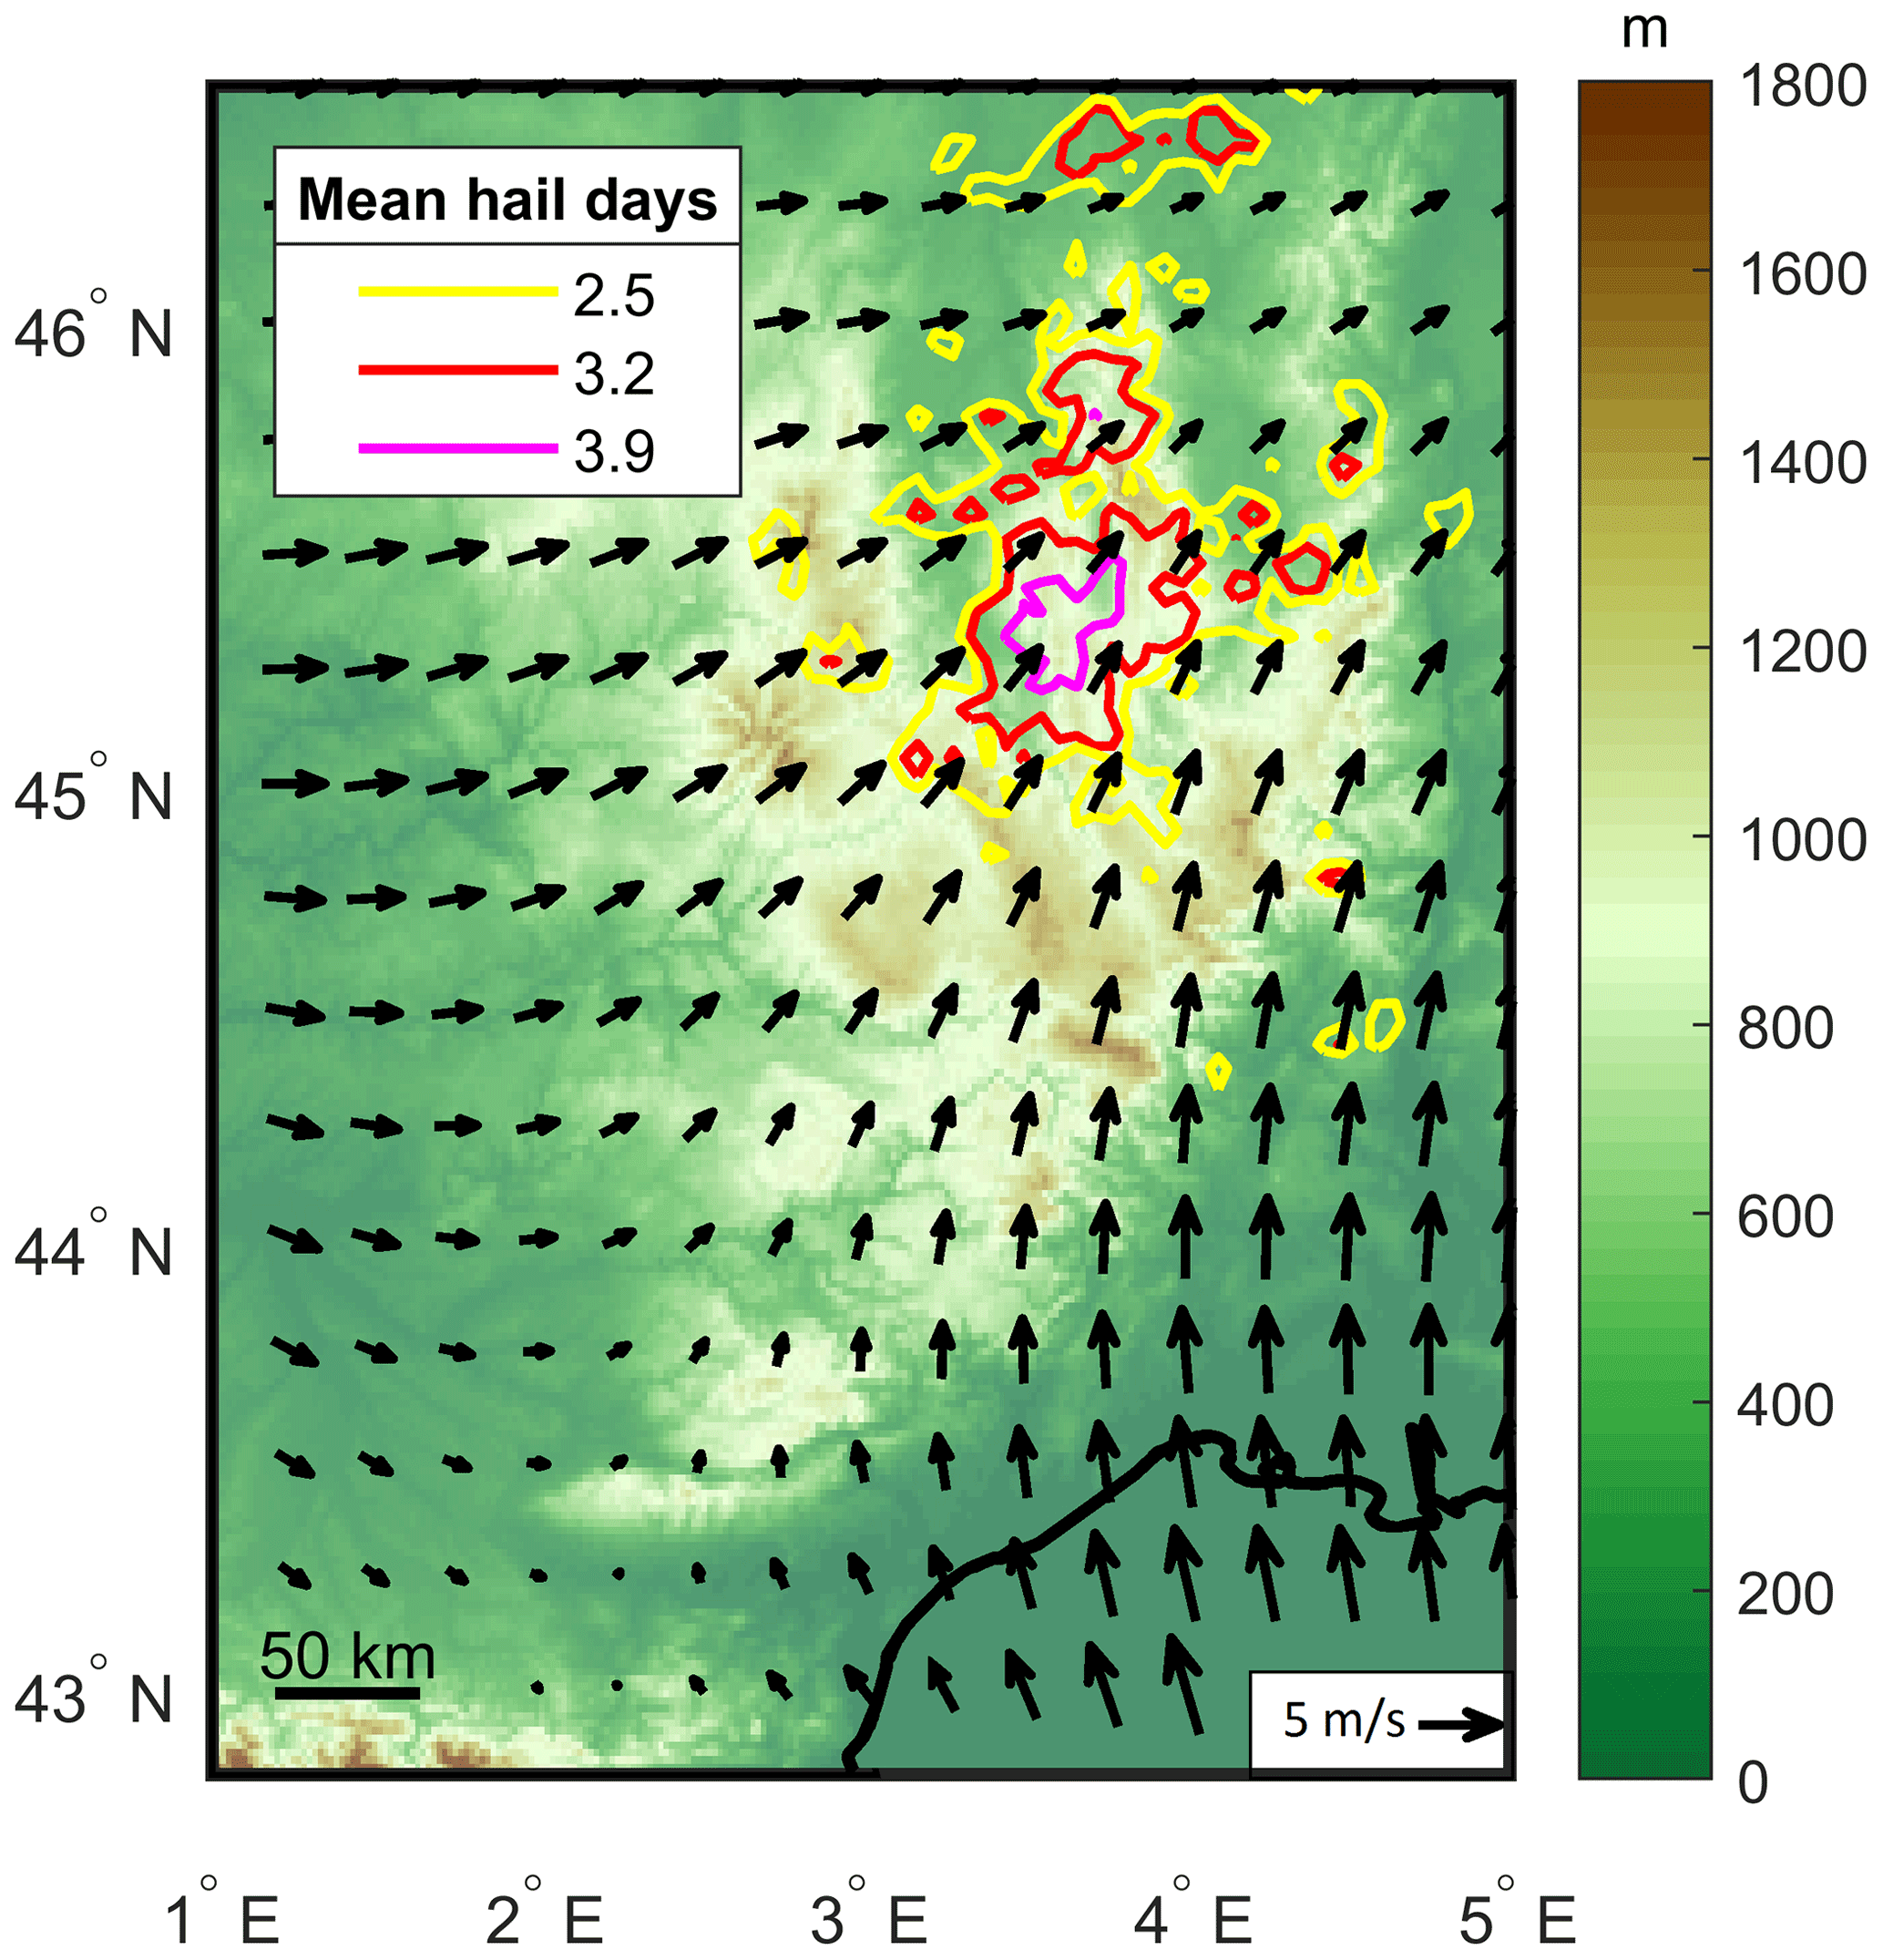 NHESS   Radar based assessment of hail frequency in Europe